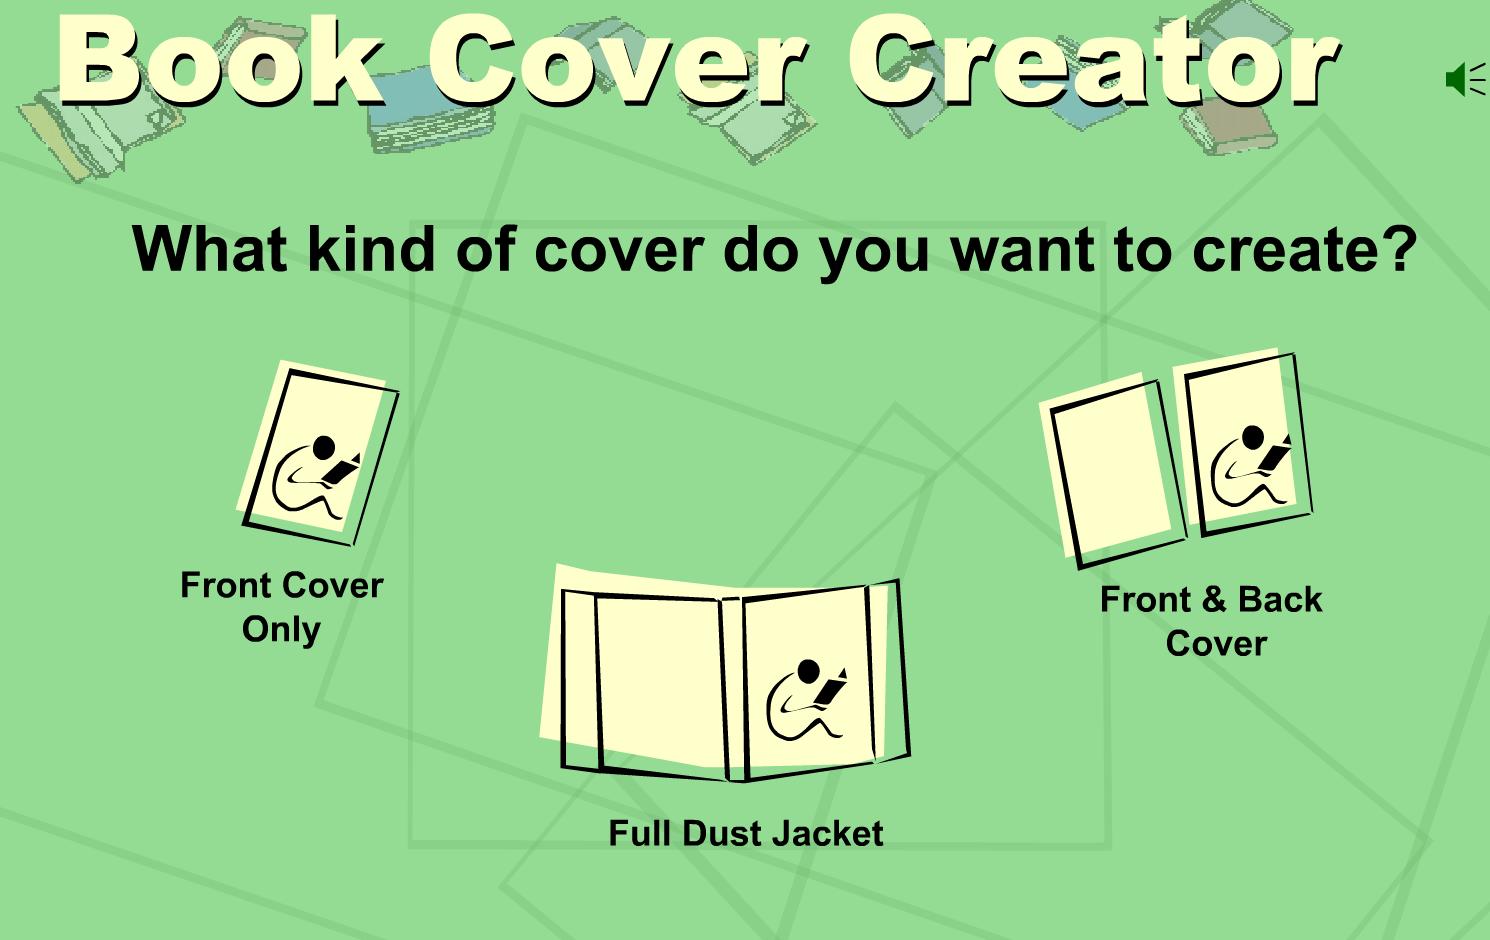 Book Cover Design Rule Of Three : A great tool students can use for creating book covers in